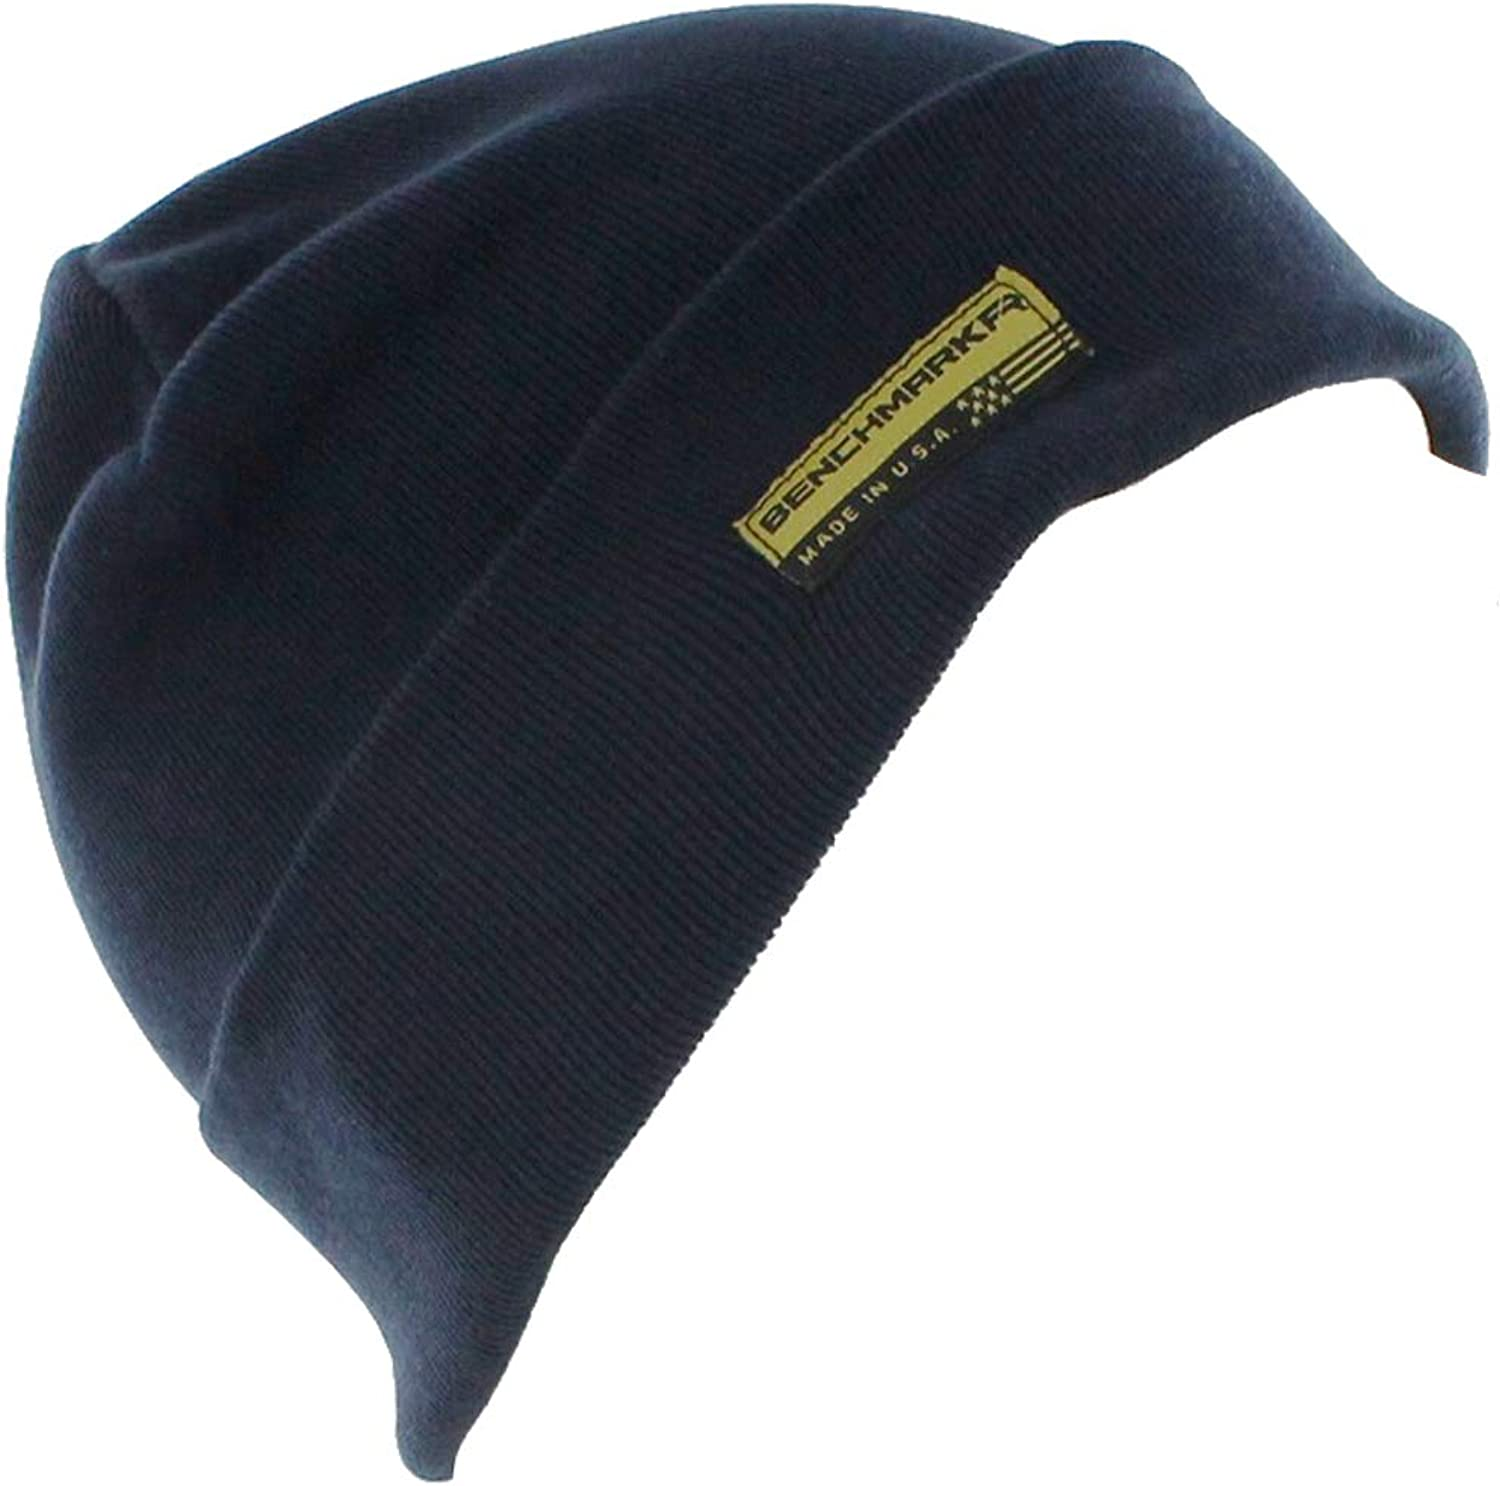 BENCHMARK FR Flame Resistant Beanie, Navy, CAT 3, One Size, Made in USA